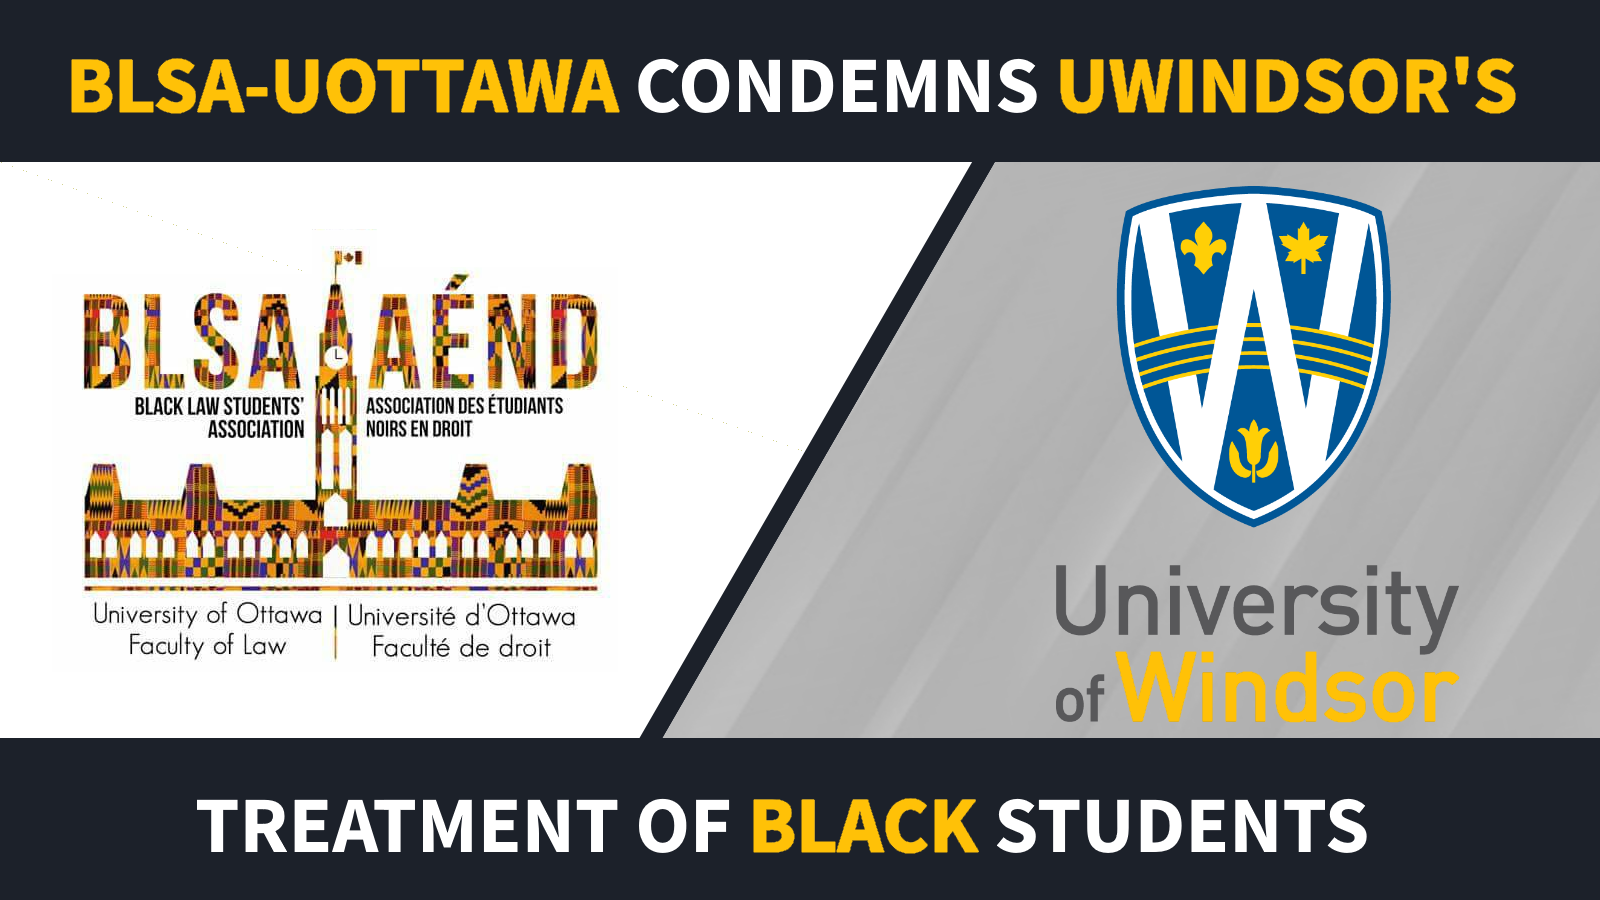 BLSA UOttawa Statment On UWindsor Discrimination Logo